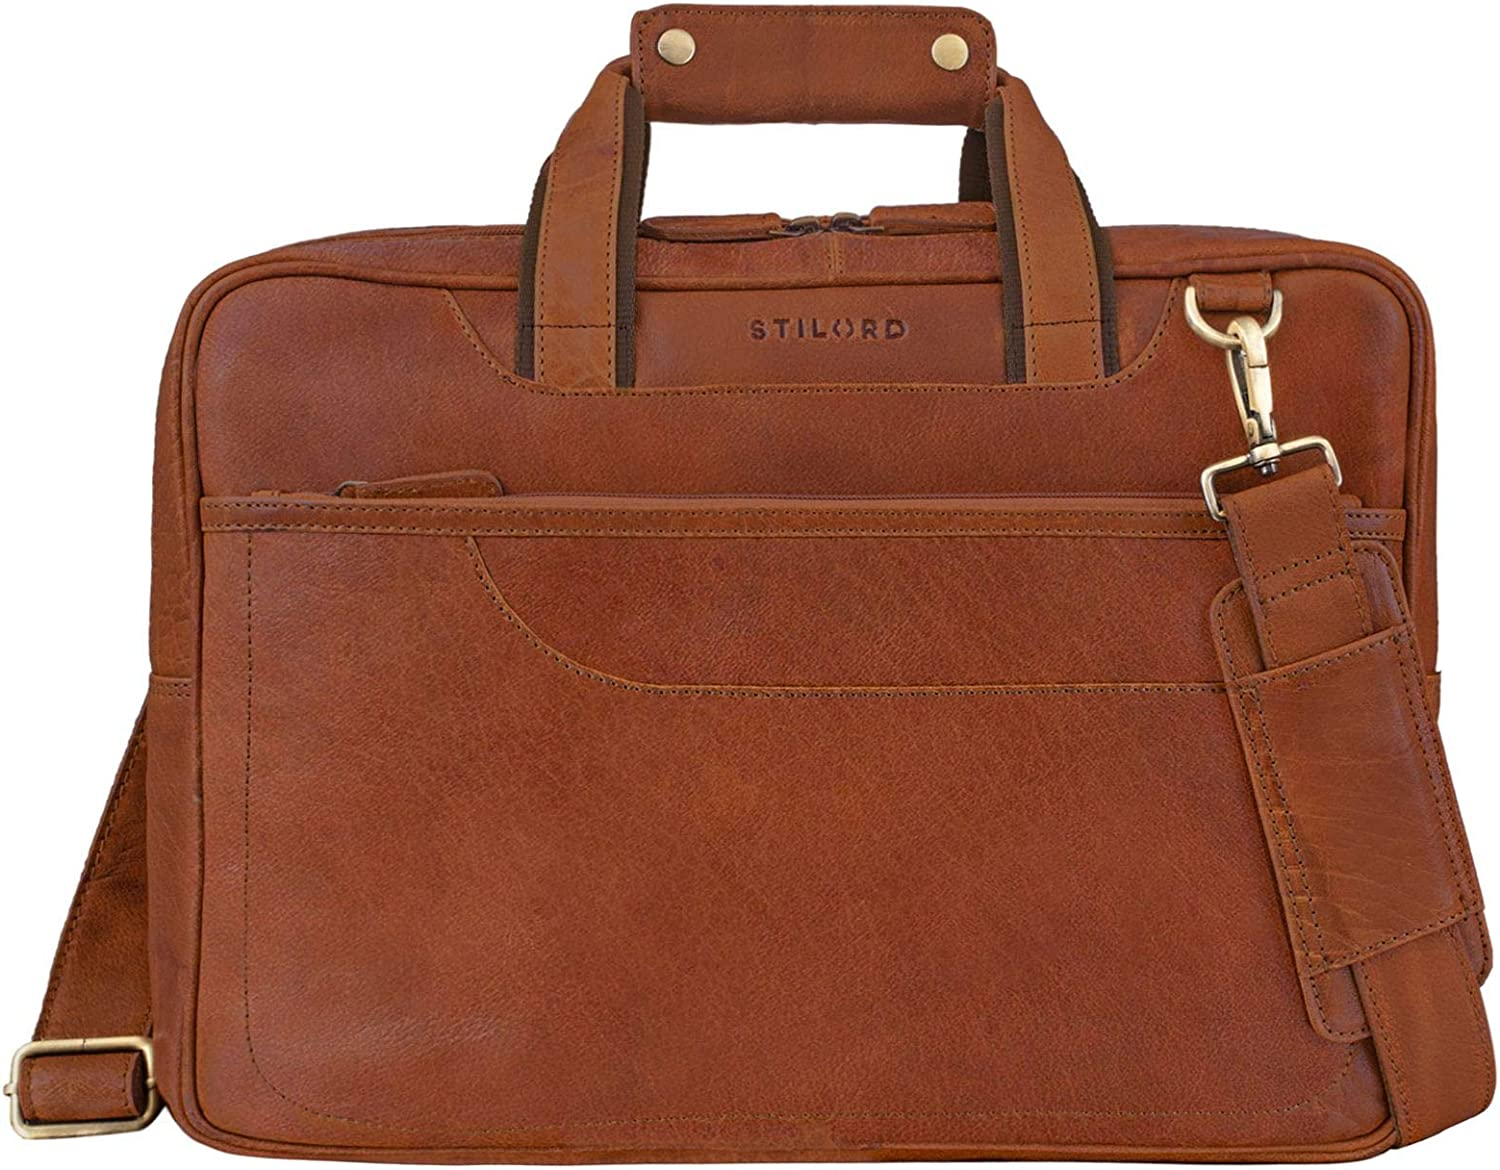 Marron STILORD Astor Sac de Professeur Cuir Serviette Homme Femme Mallette Porte-Documents Grand Sac /à Bandouli/ère Cuir V/éritable Couleur:Brasilia